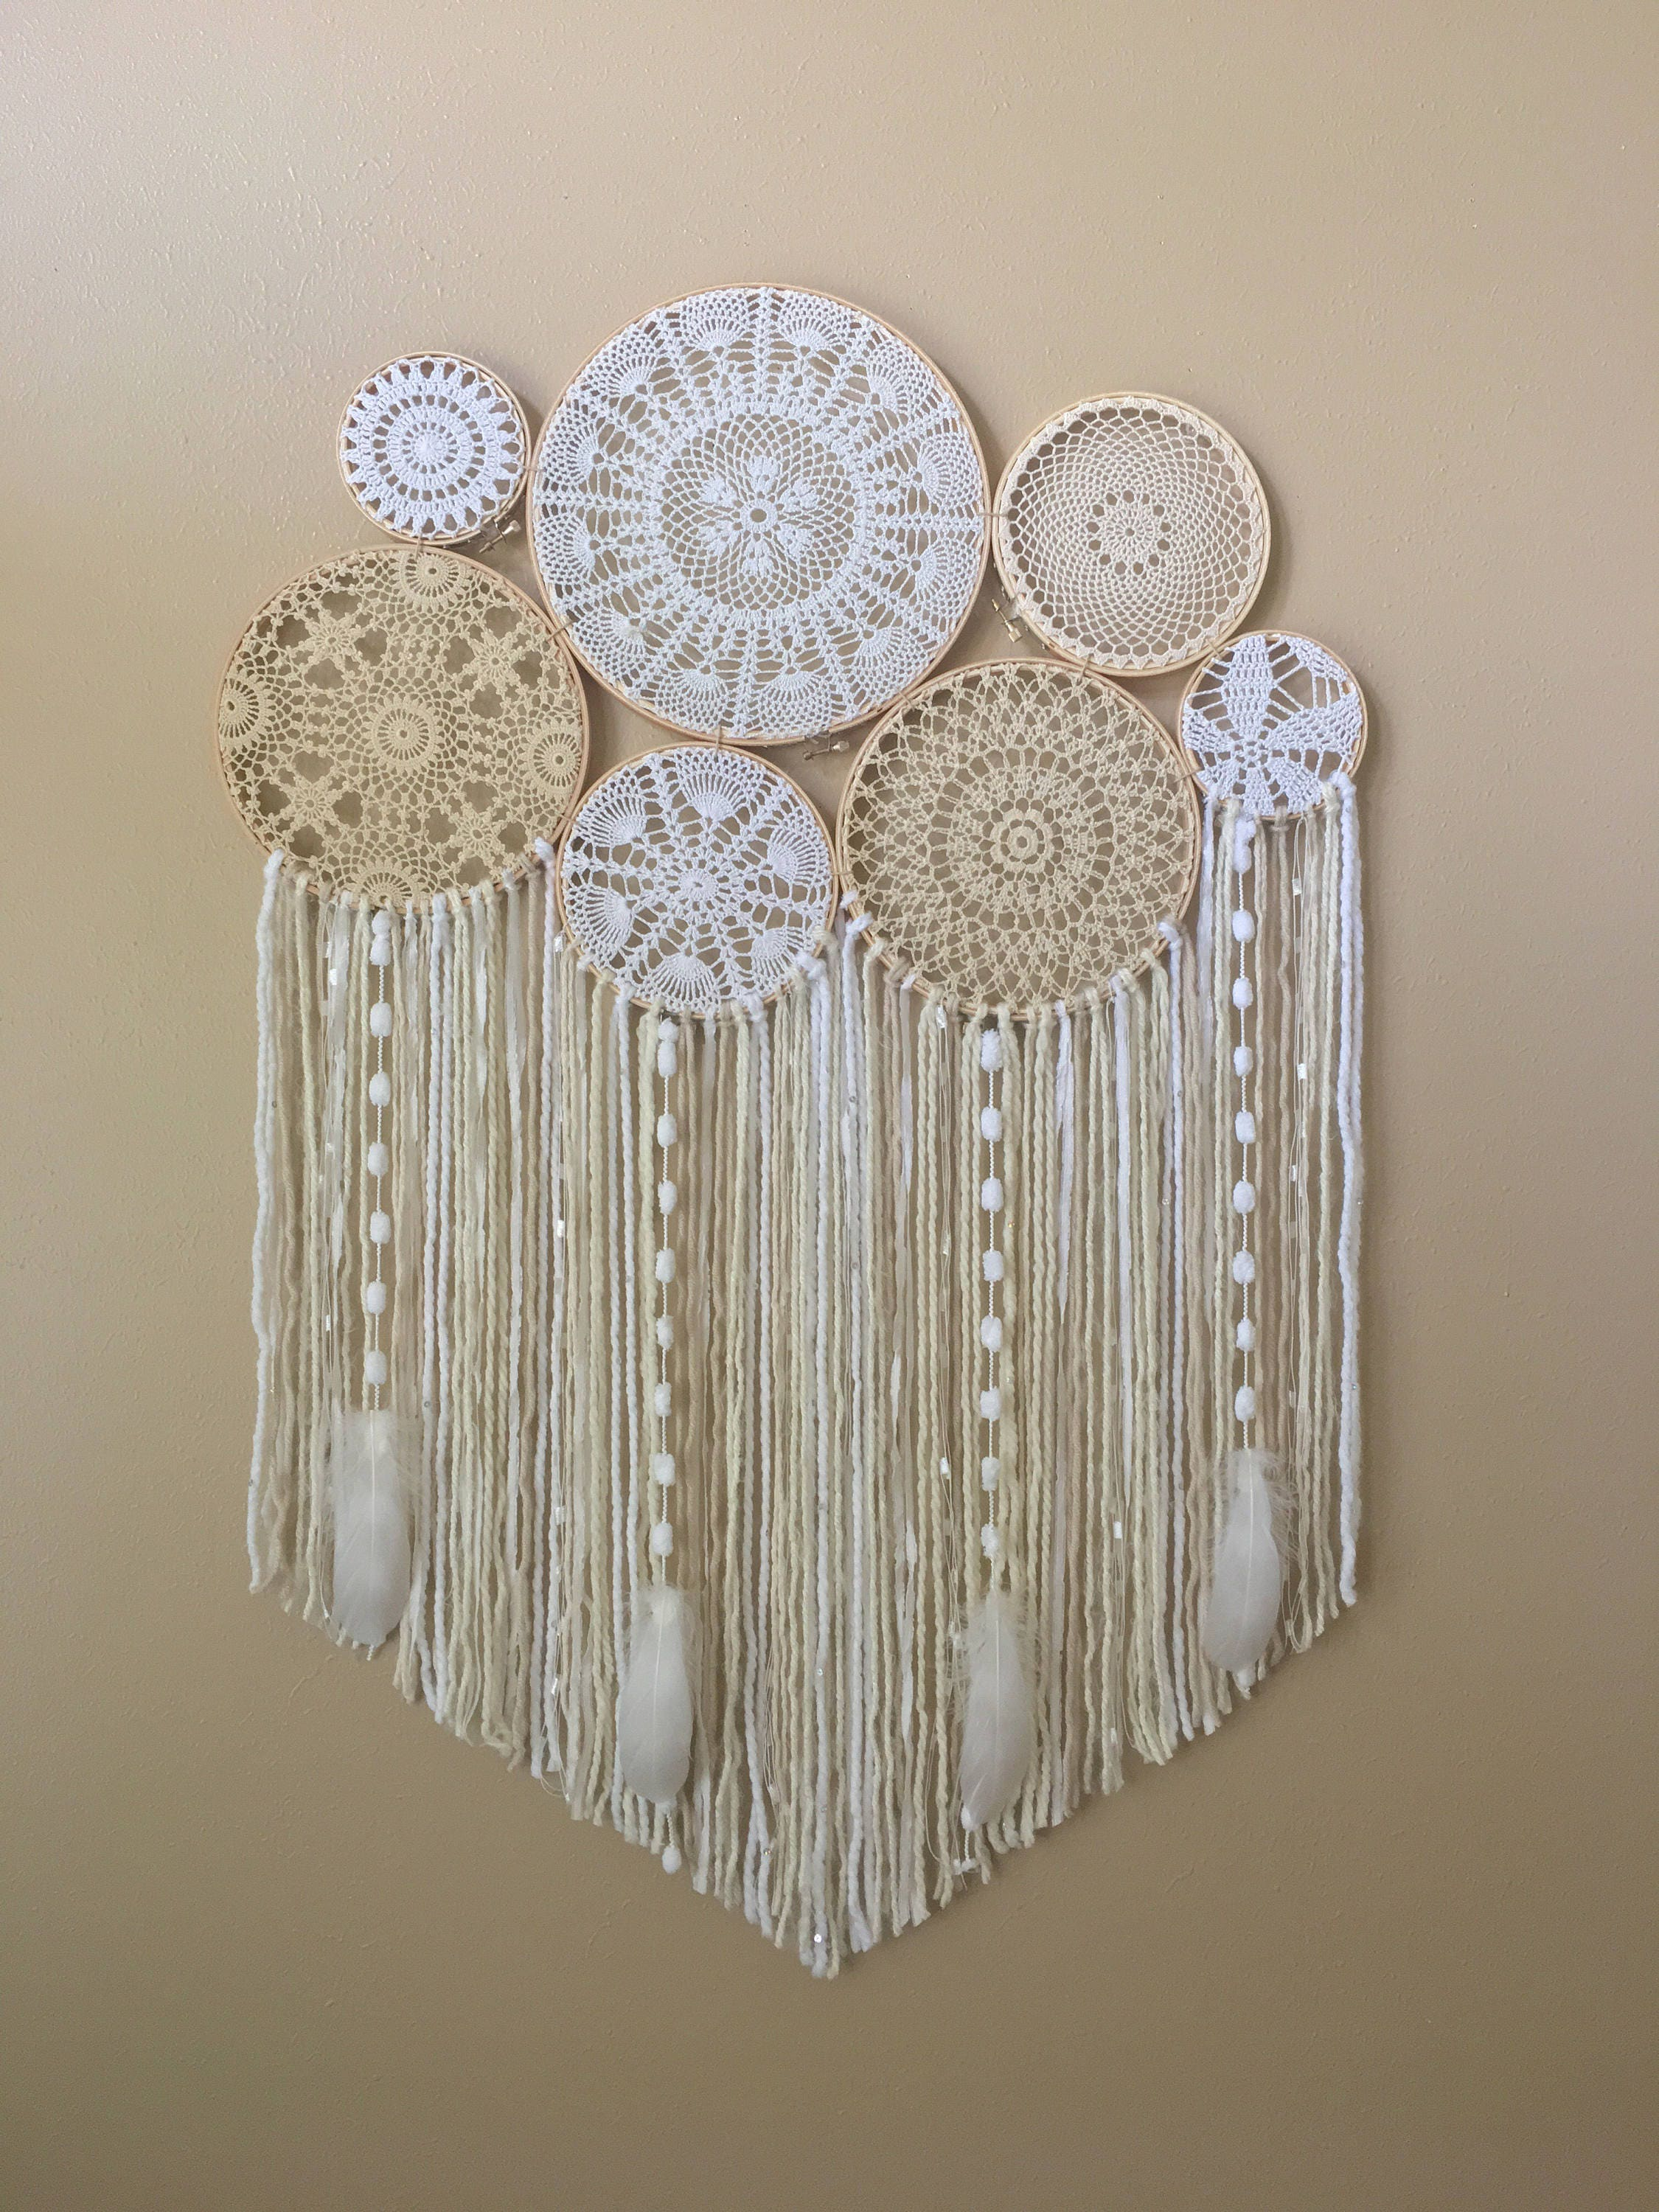 Dream catcher wall hanging doily dream catcher boho for Wall hanging